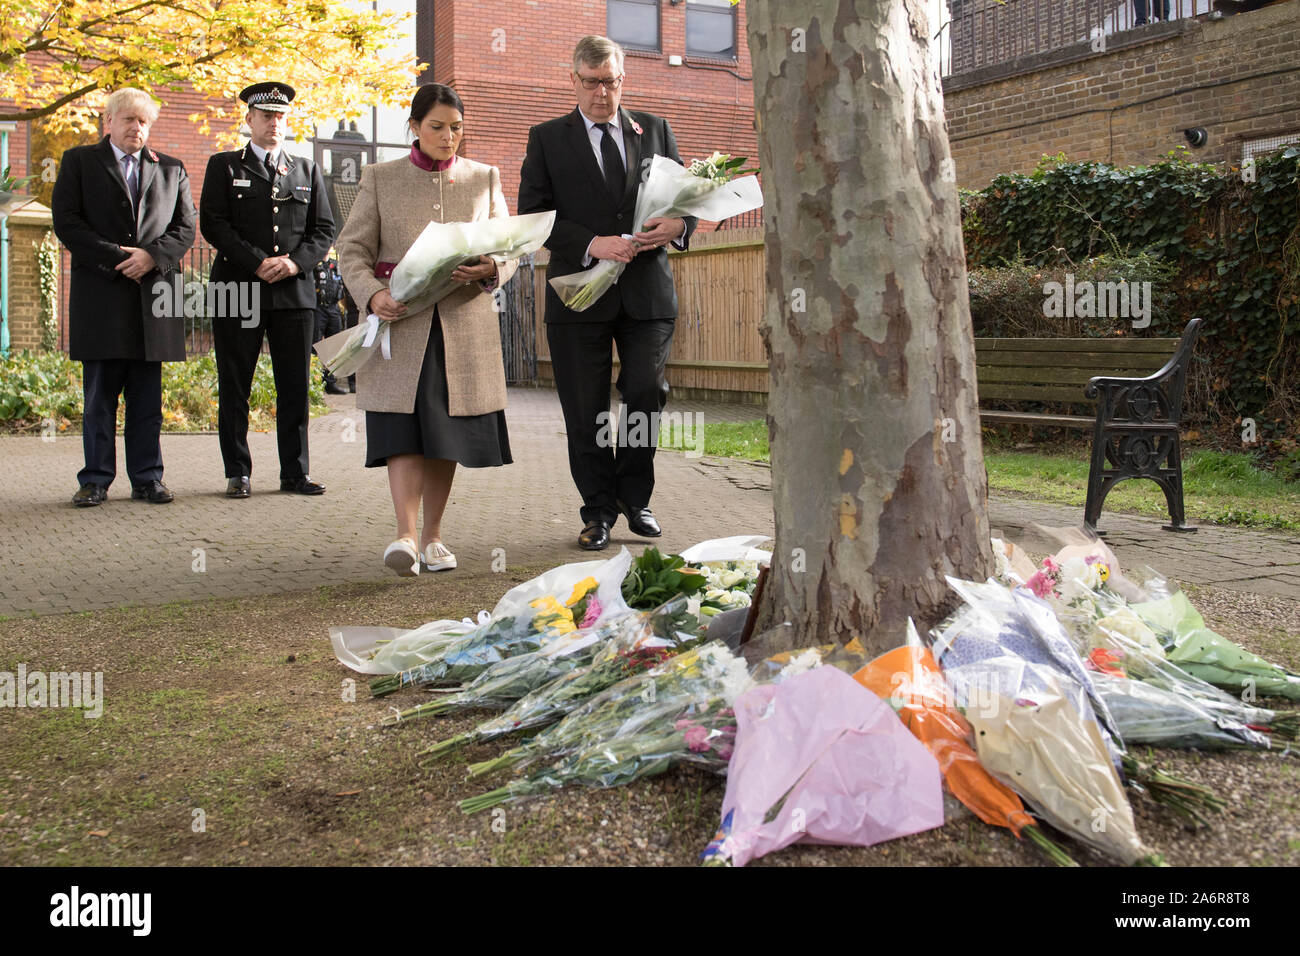 Prime Minister Boris Johnson stands with the Chief Constable of Essex Police, Ben-Julian Harrington as Home Secretary Priti Patel, lays flowers during a visit to Thurrock Council Offices in Essex after the bodies of 39 people were found in a lorry container last week. Stock Photo